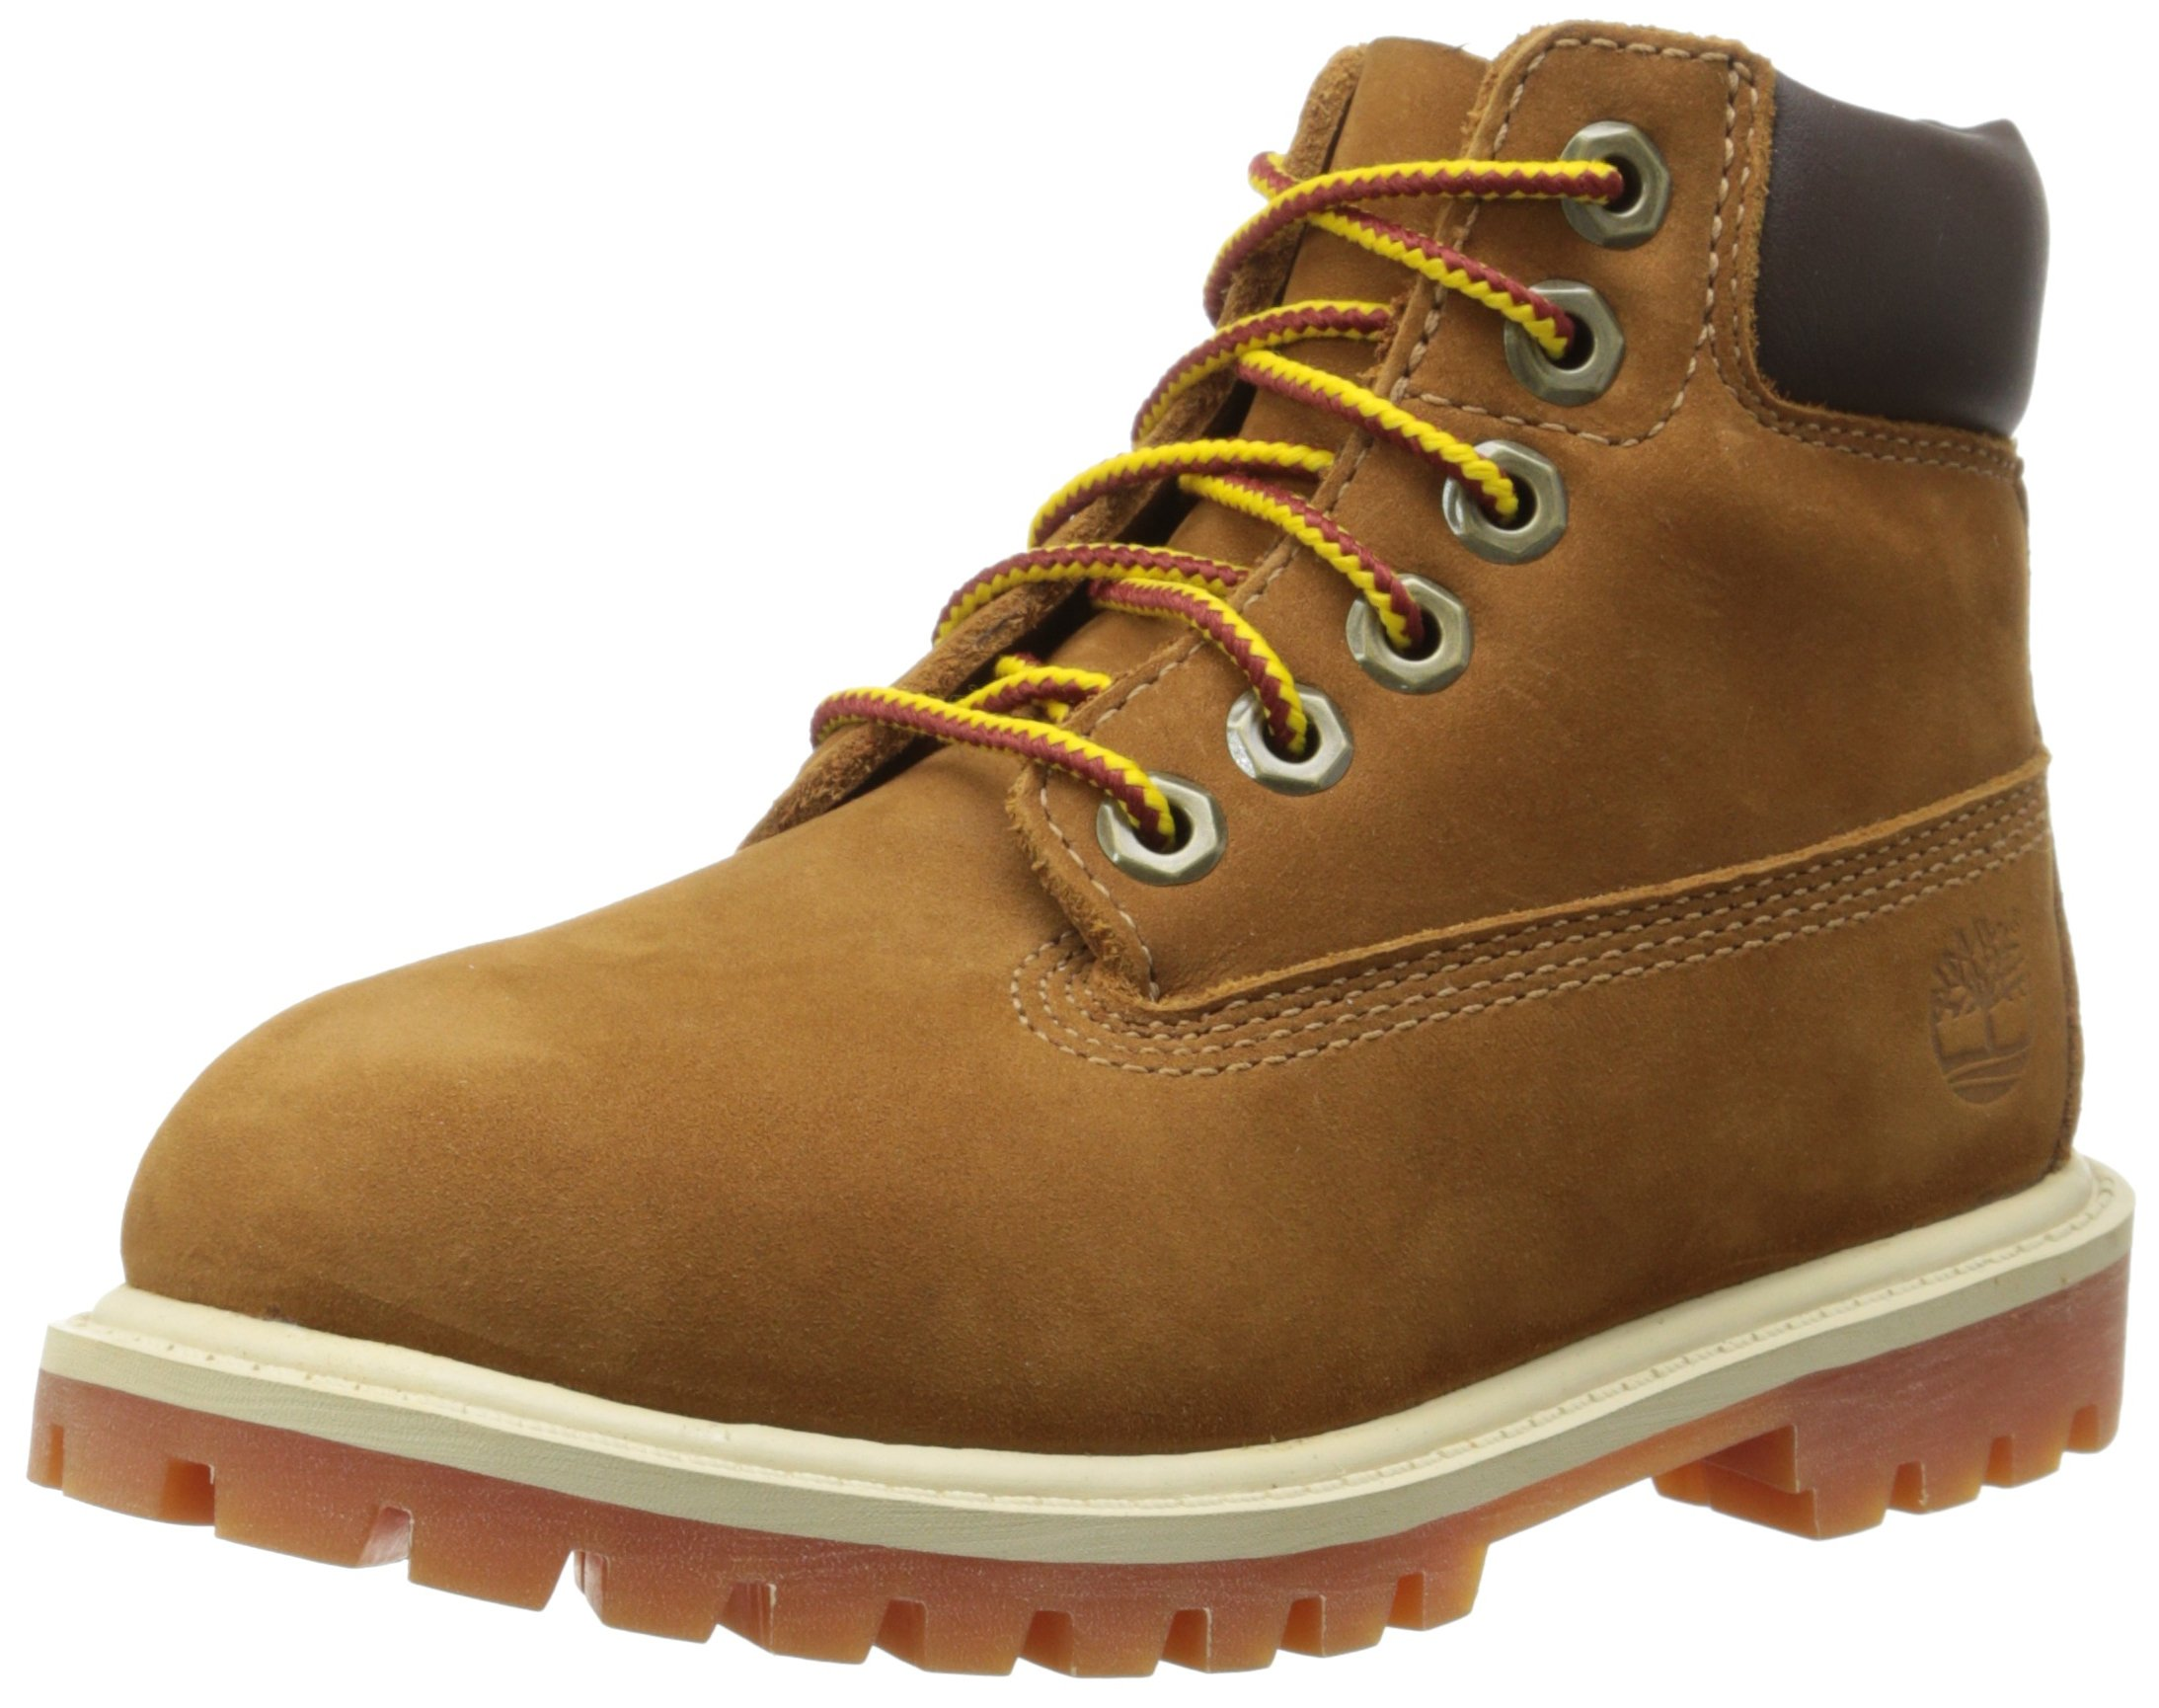 Timberland 6'' C12907 Premium Waterproof Boot,Rust Nubuck/Honey,3.5 M US Big Kid by Timberland